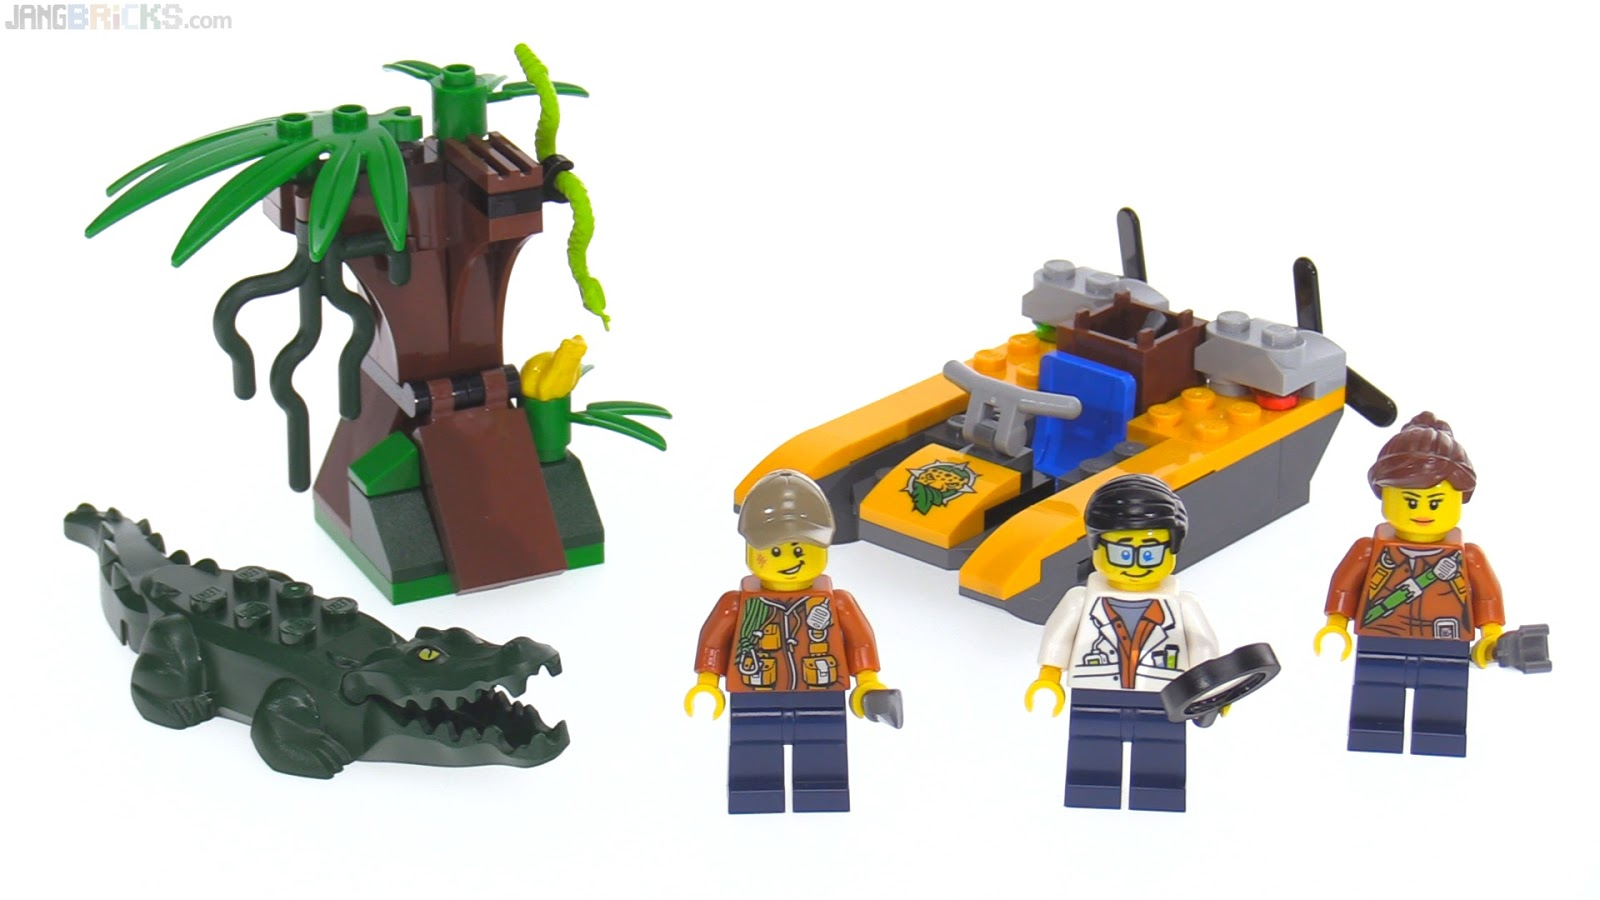 JANGBRiCKS LEGO reviews & MOCs: June 2017